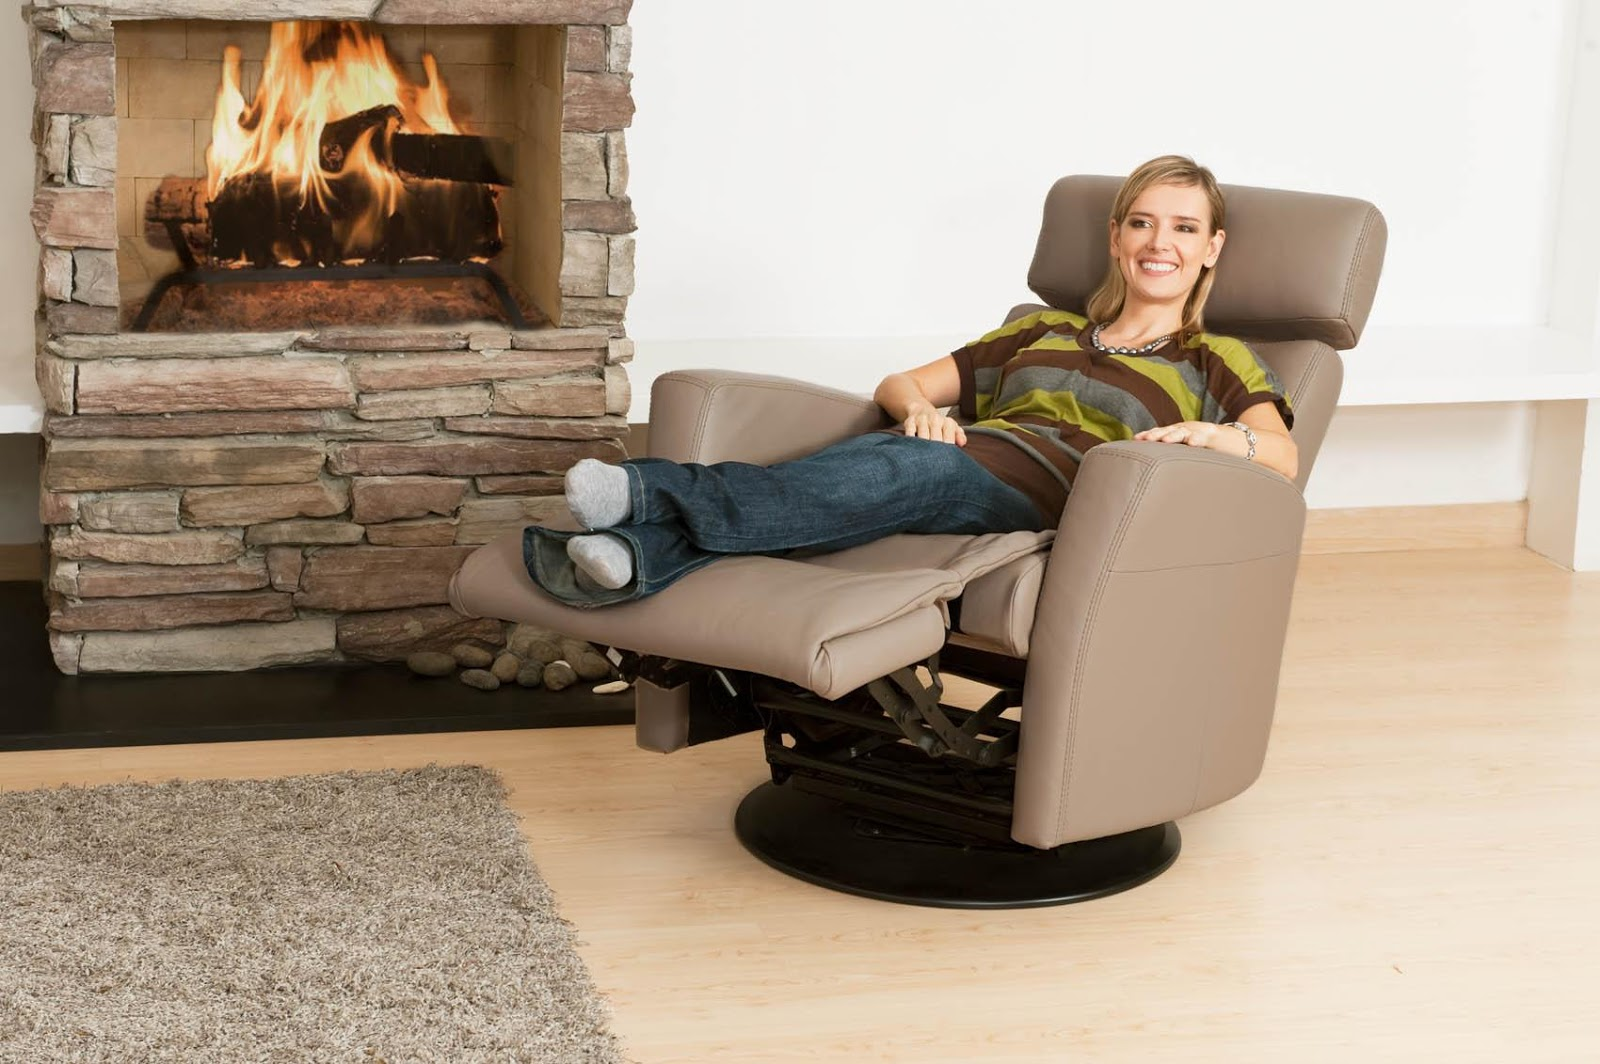 7 Ways Lift Chairs Can Help You Through Surgery Recovery